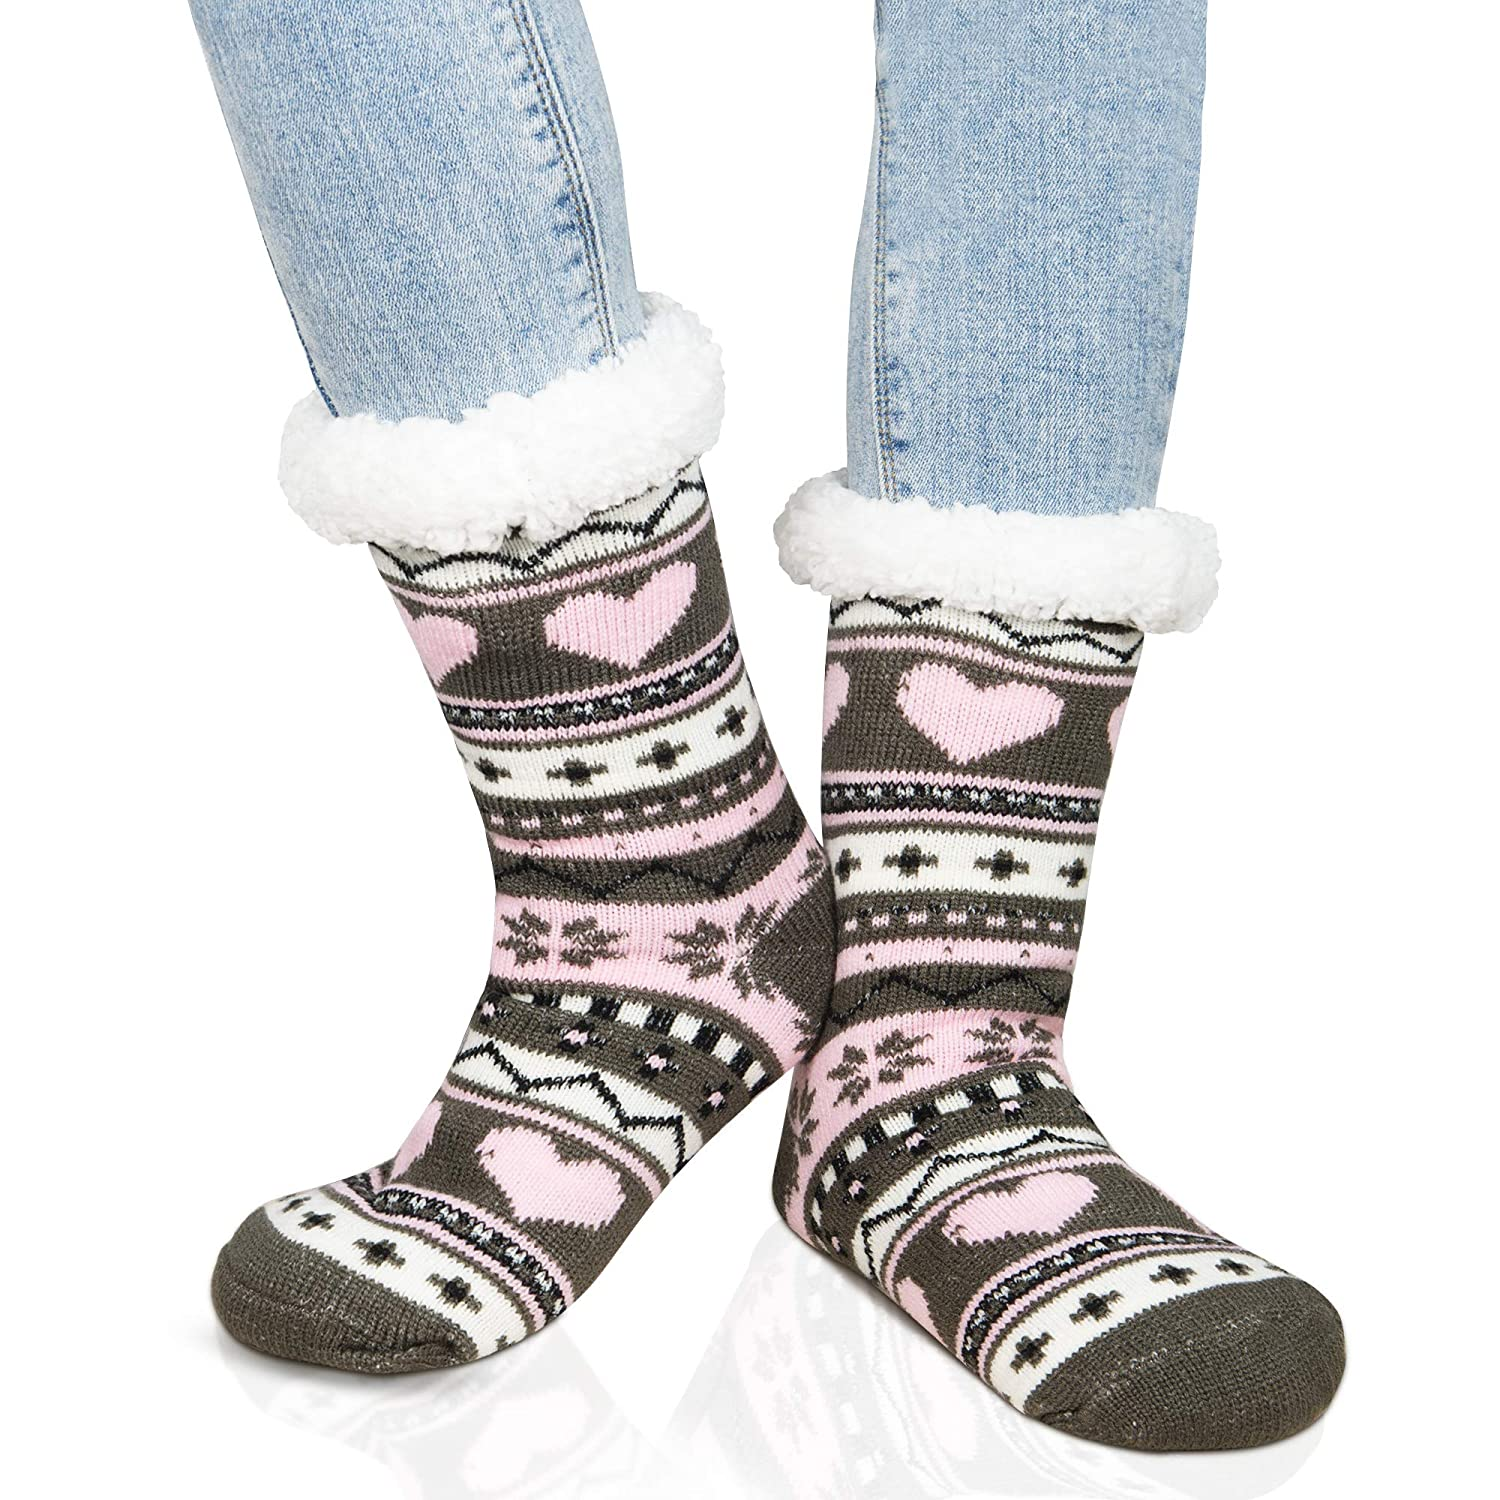 American Trends Womens Girl's Cute Soft Fuzzy Socks Cozy Winter Warm Slipper Socks ATTFAS2671SHA1P